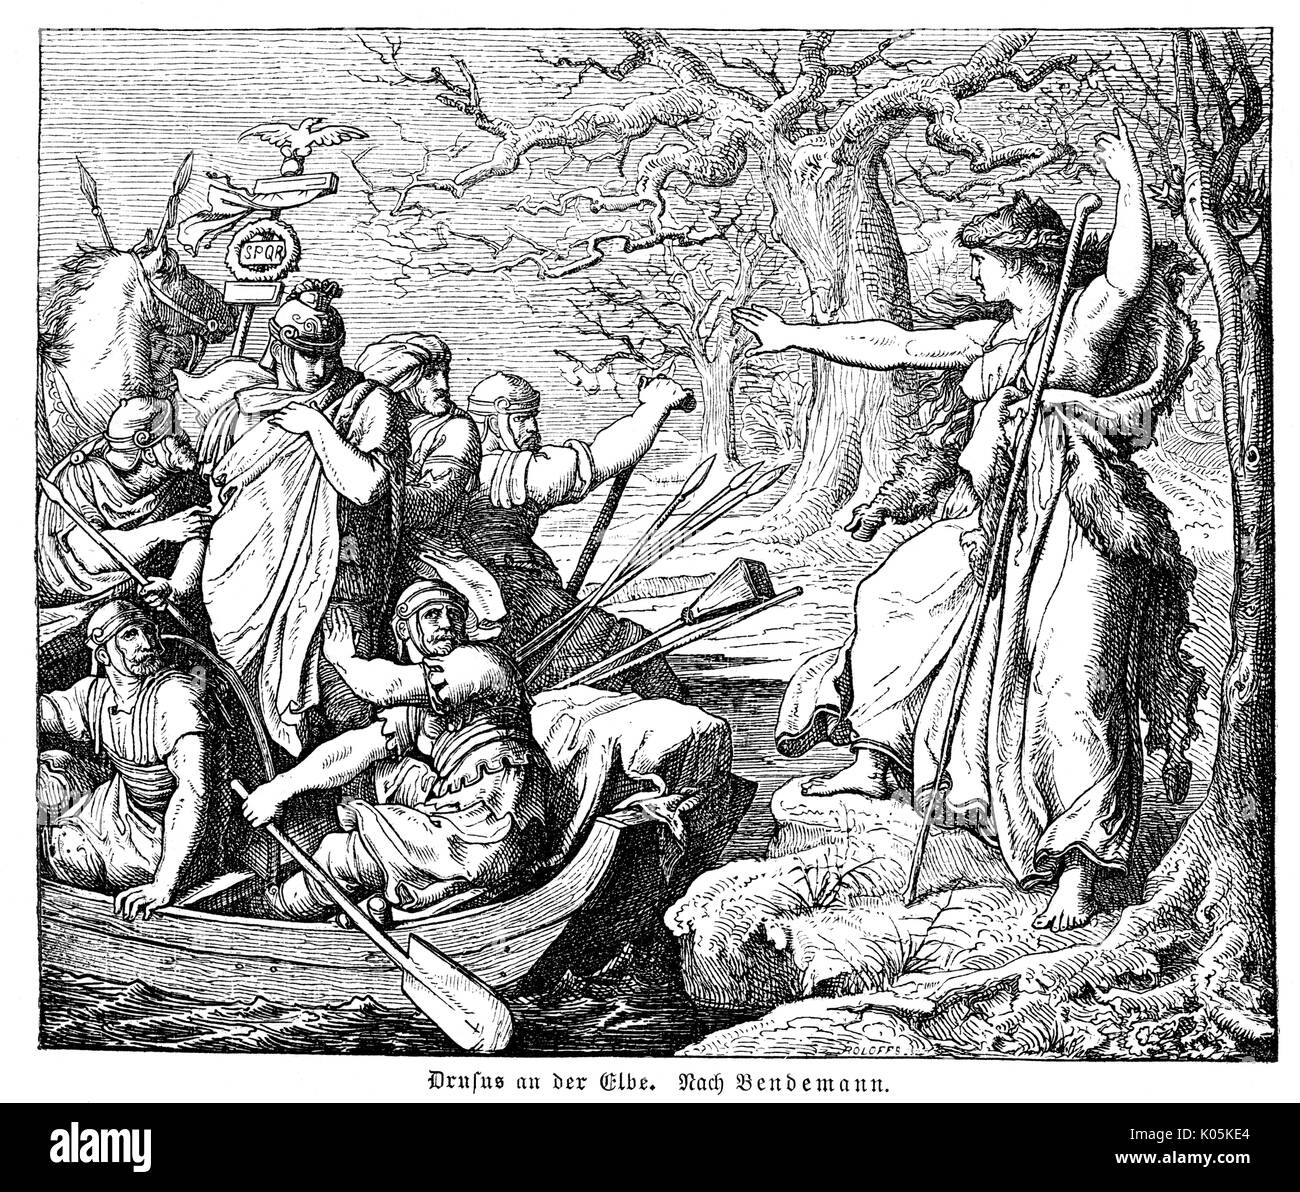 Drussus, having reached the  Elbe, is threatened by a  German priestess        Date: 9 BC - Stock Image